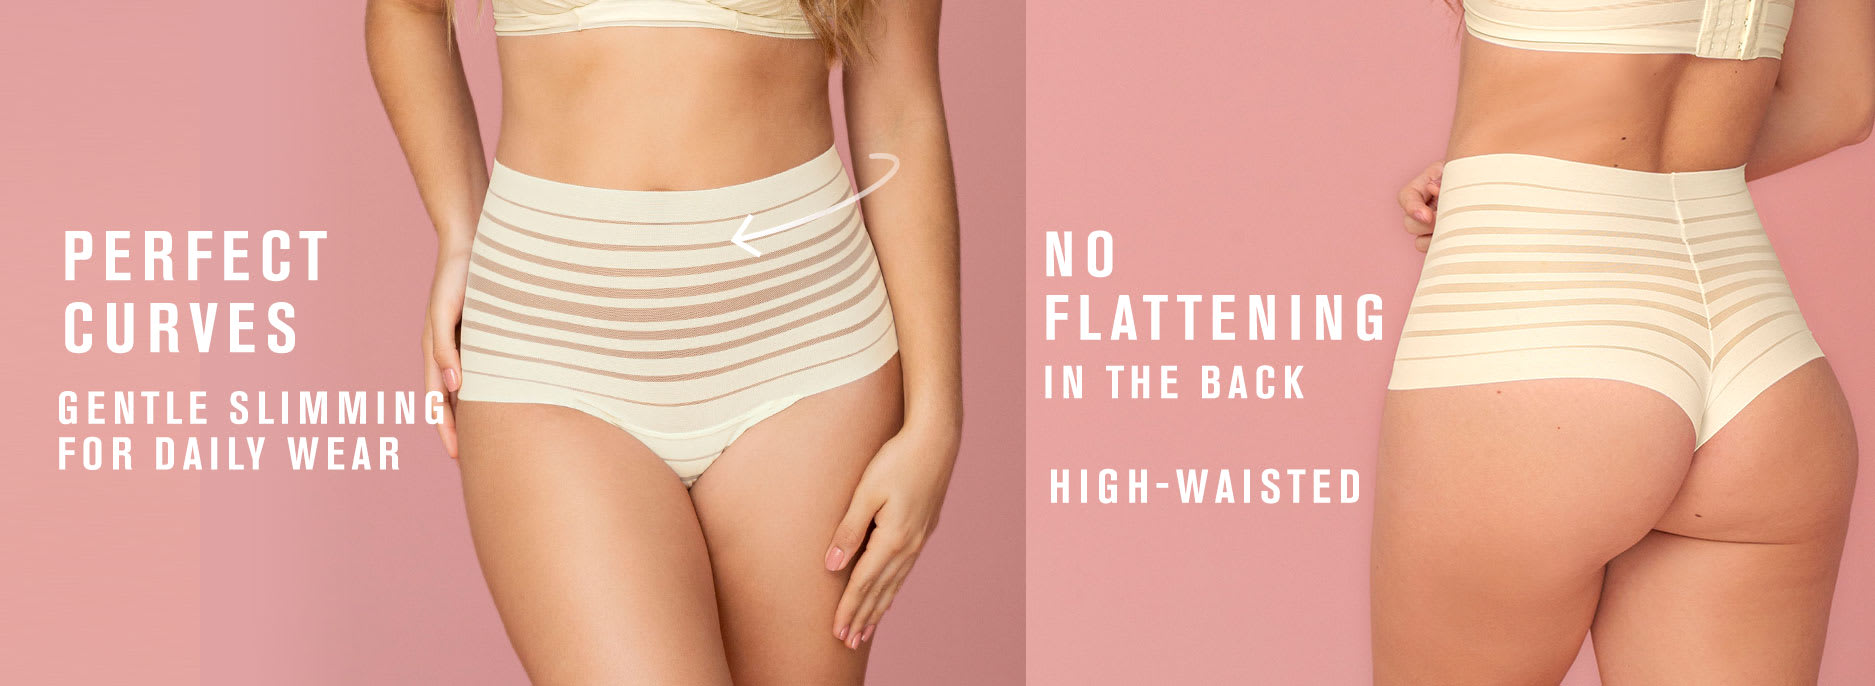 Lace Stripe High-Waisted Cheeky Hipster Knicker